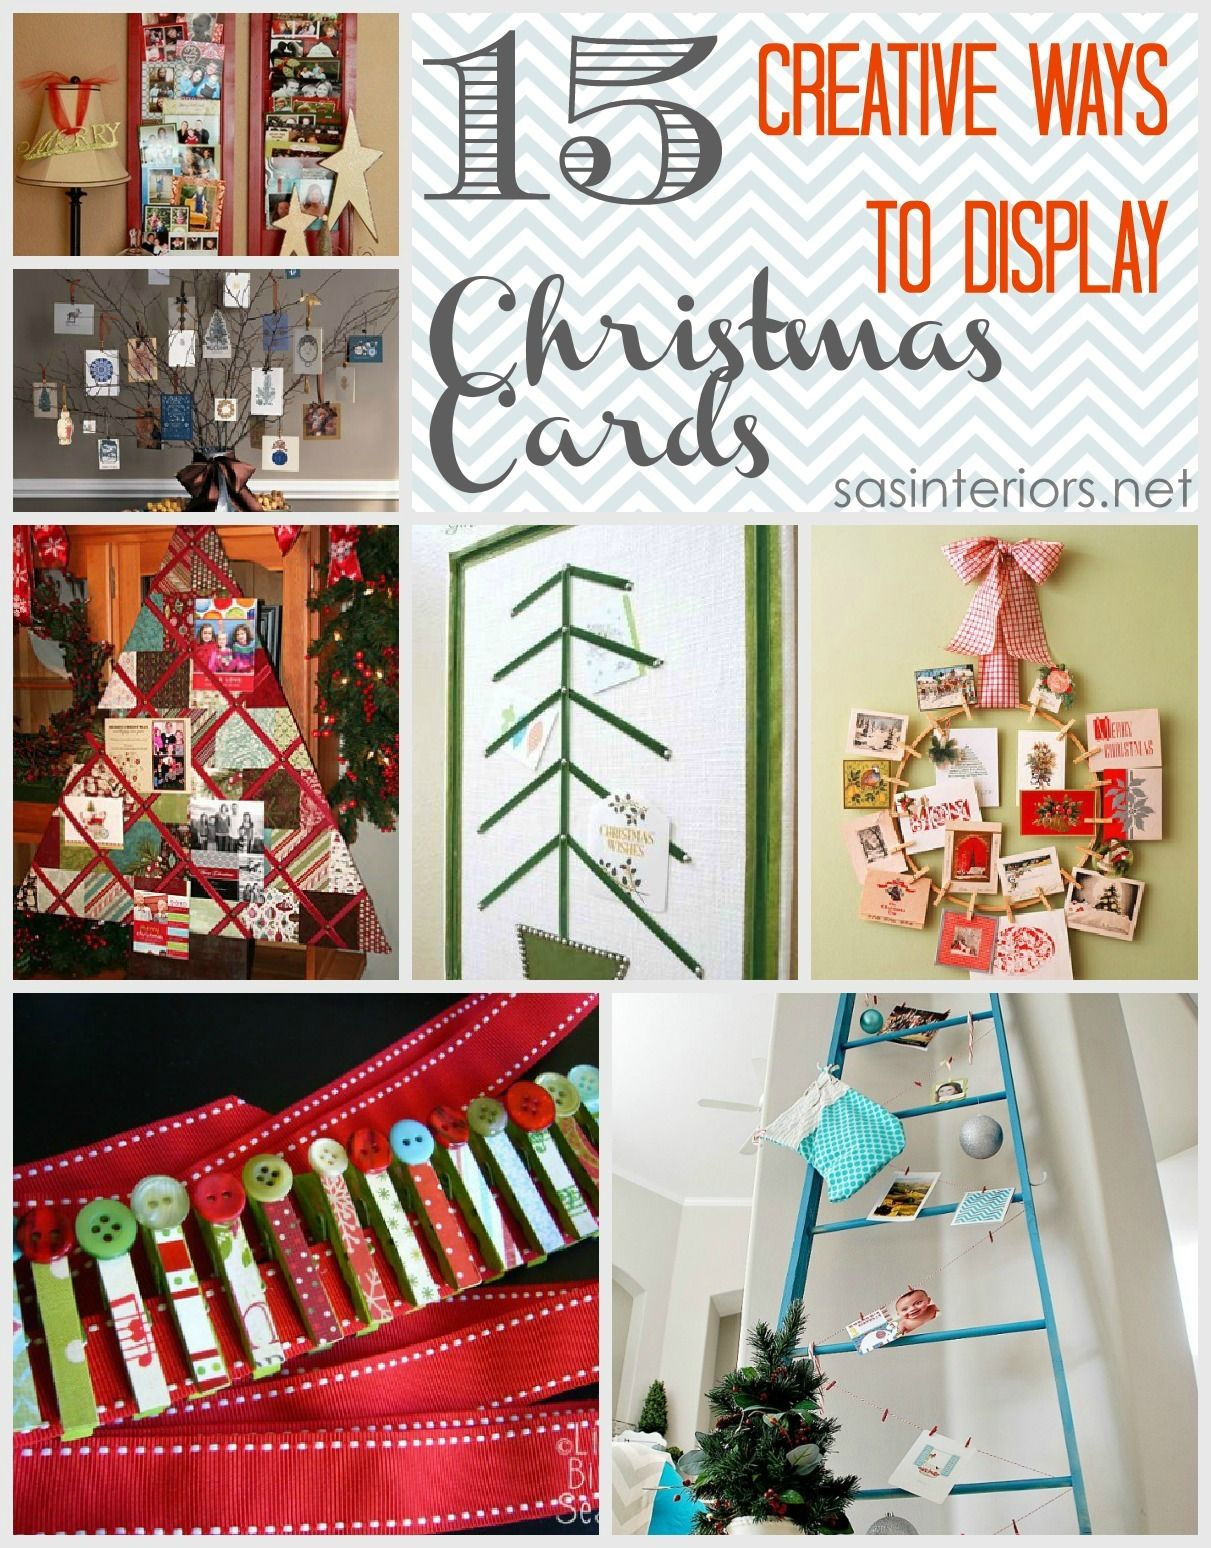 15 Creative Ways to Display Christmas Cards - easy and fun do it ...